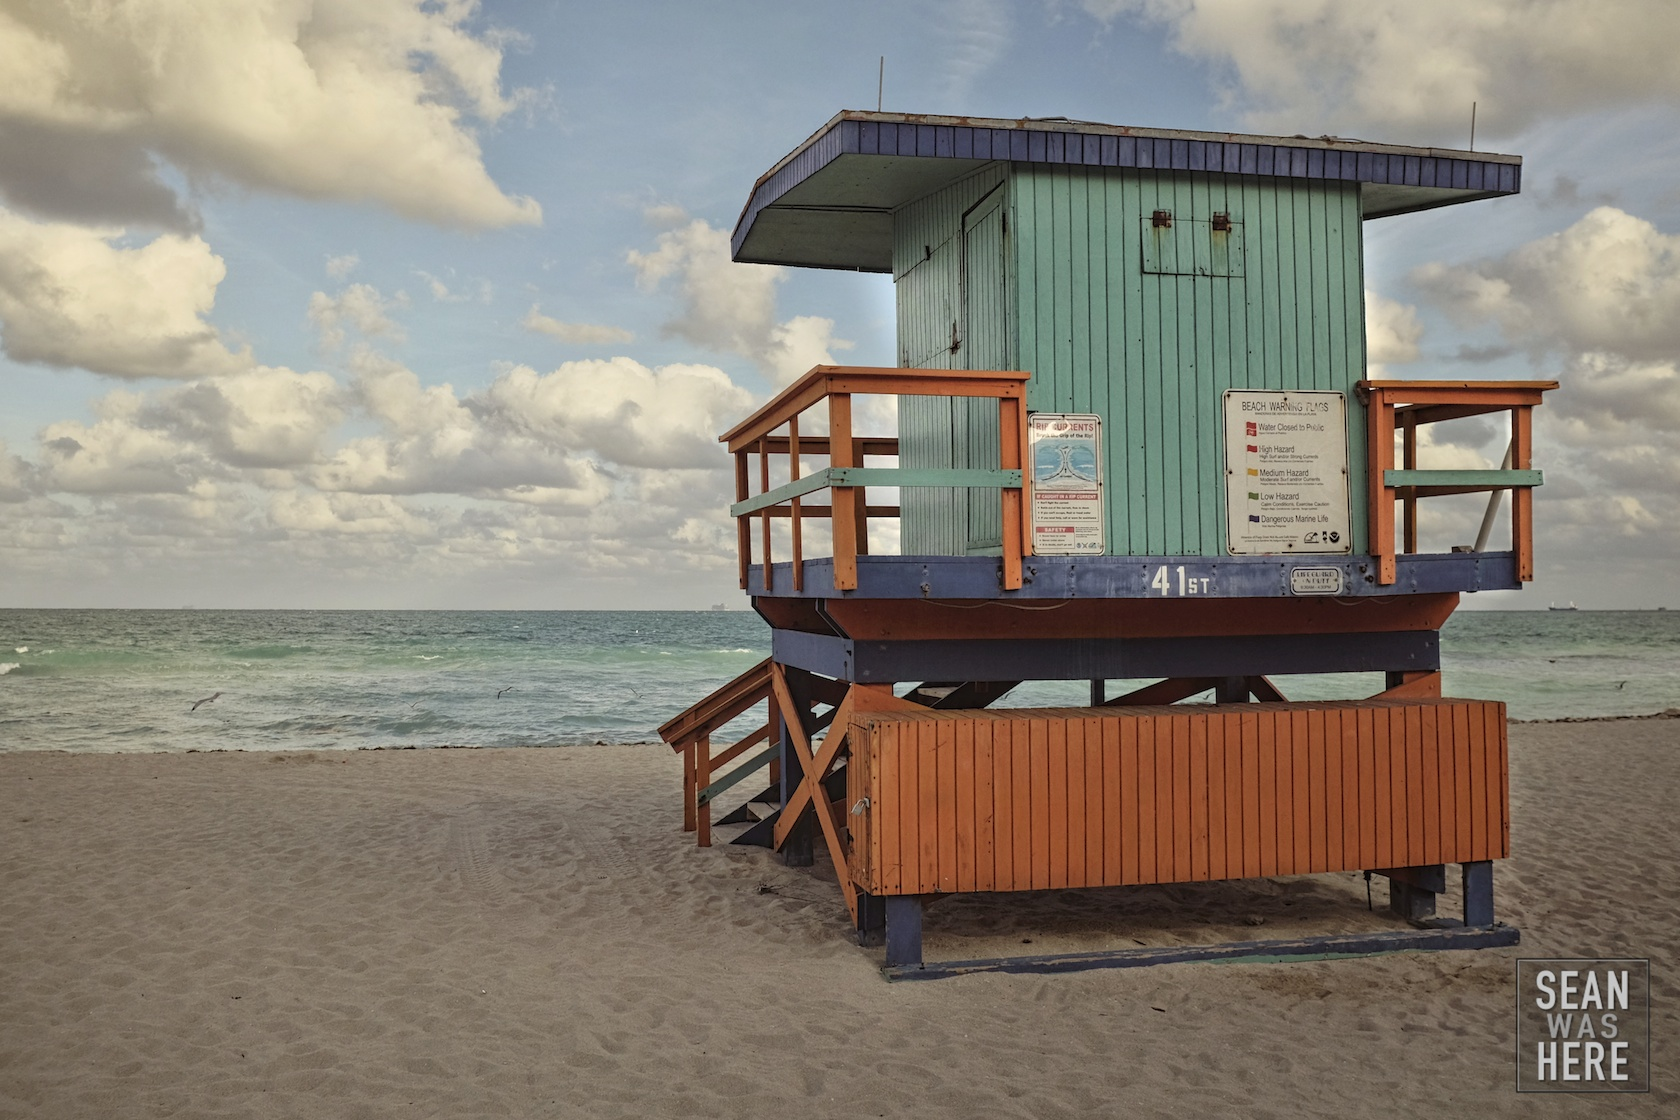 Miami Beach 41st Street Lifeguard Stand